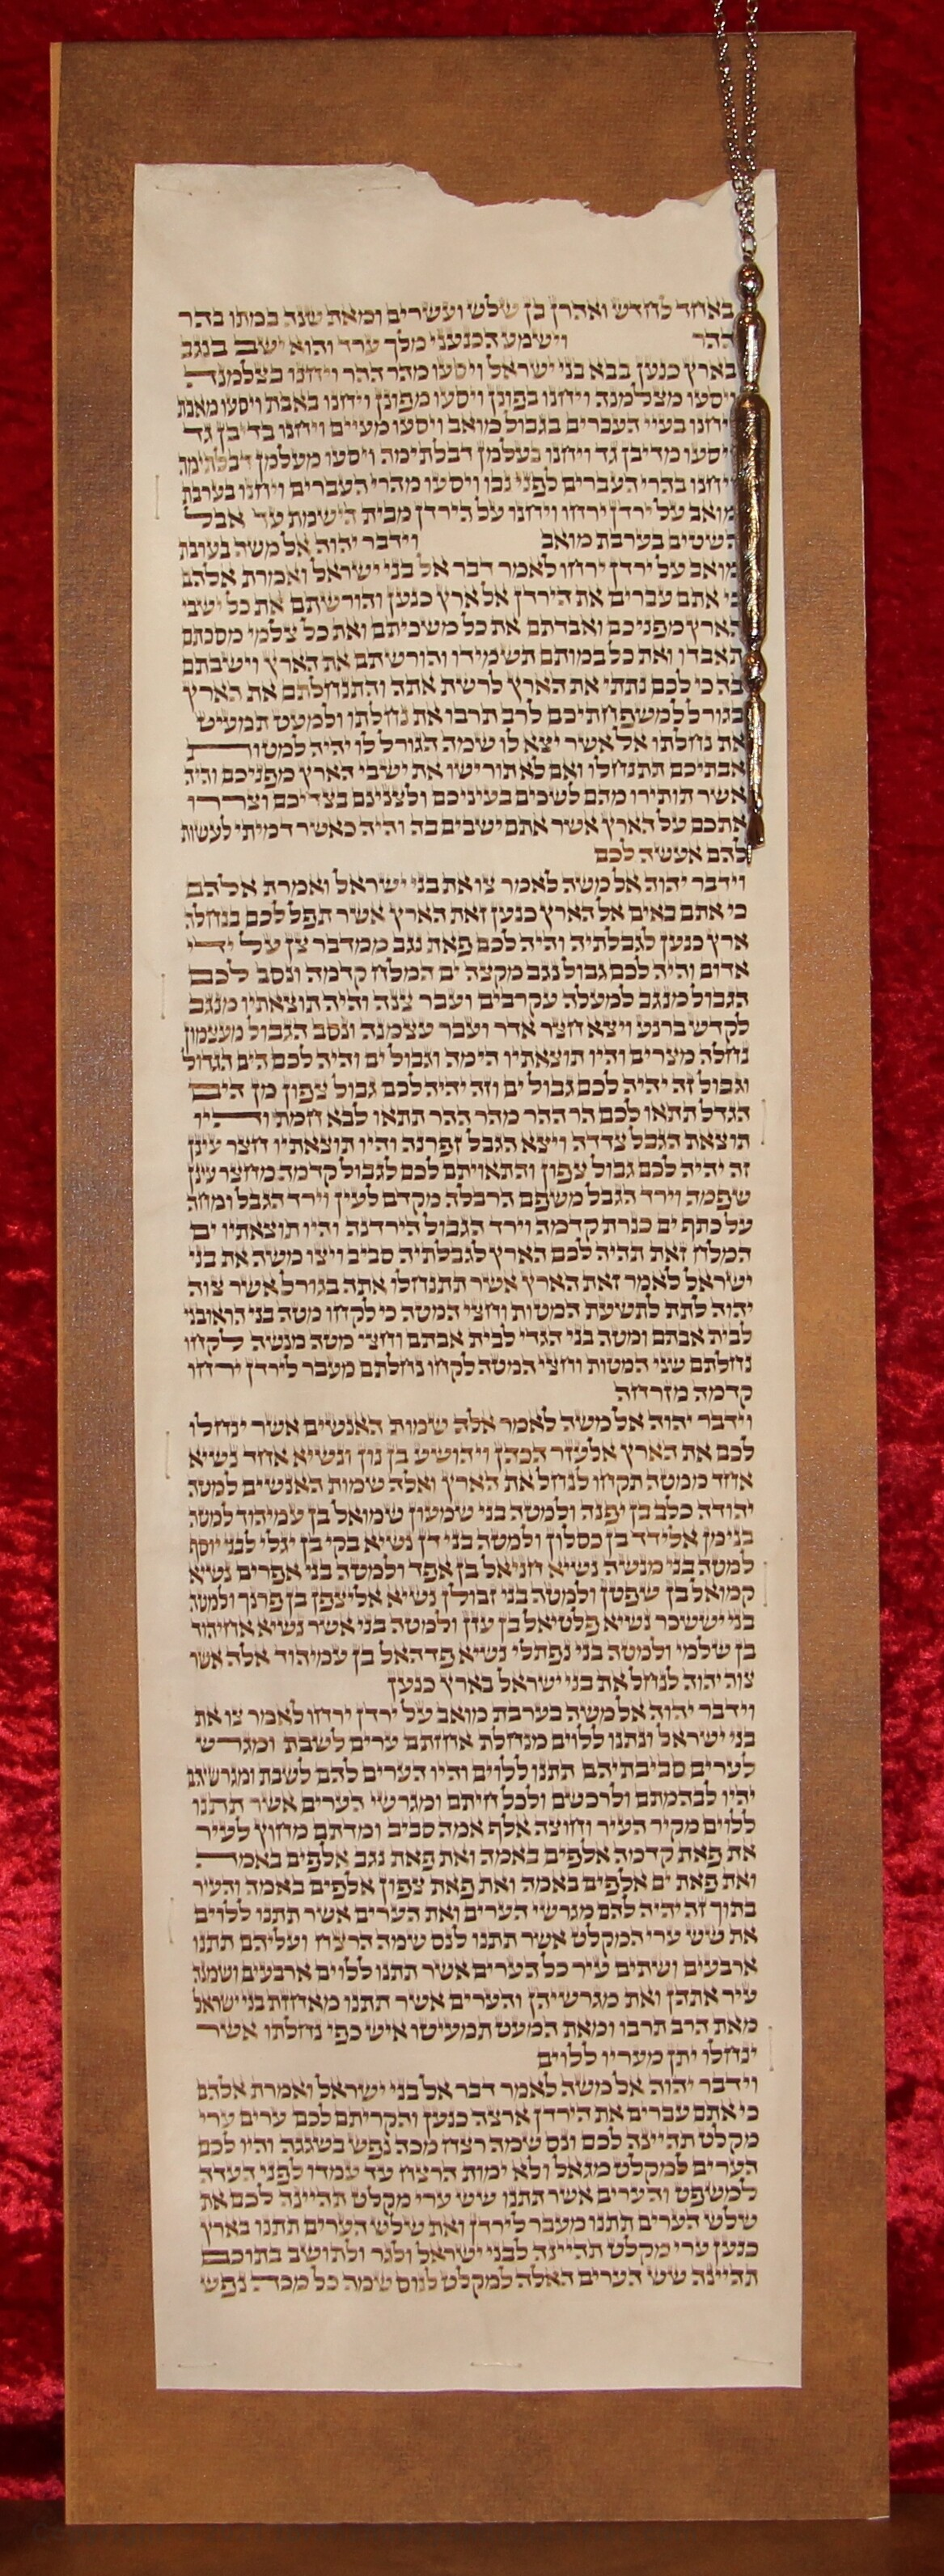 This column contains the exact boundaries for the land promised to Abram and His descendants through Isaac and Jacob.